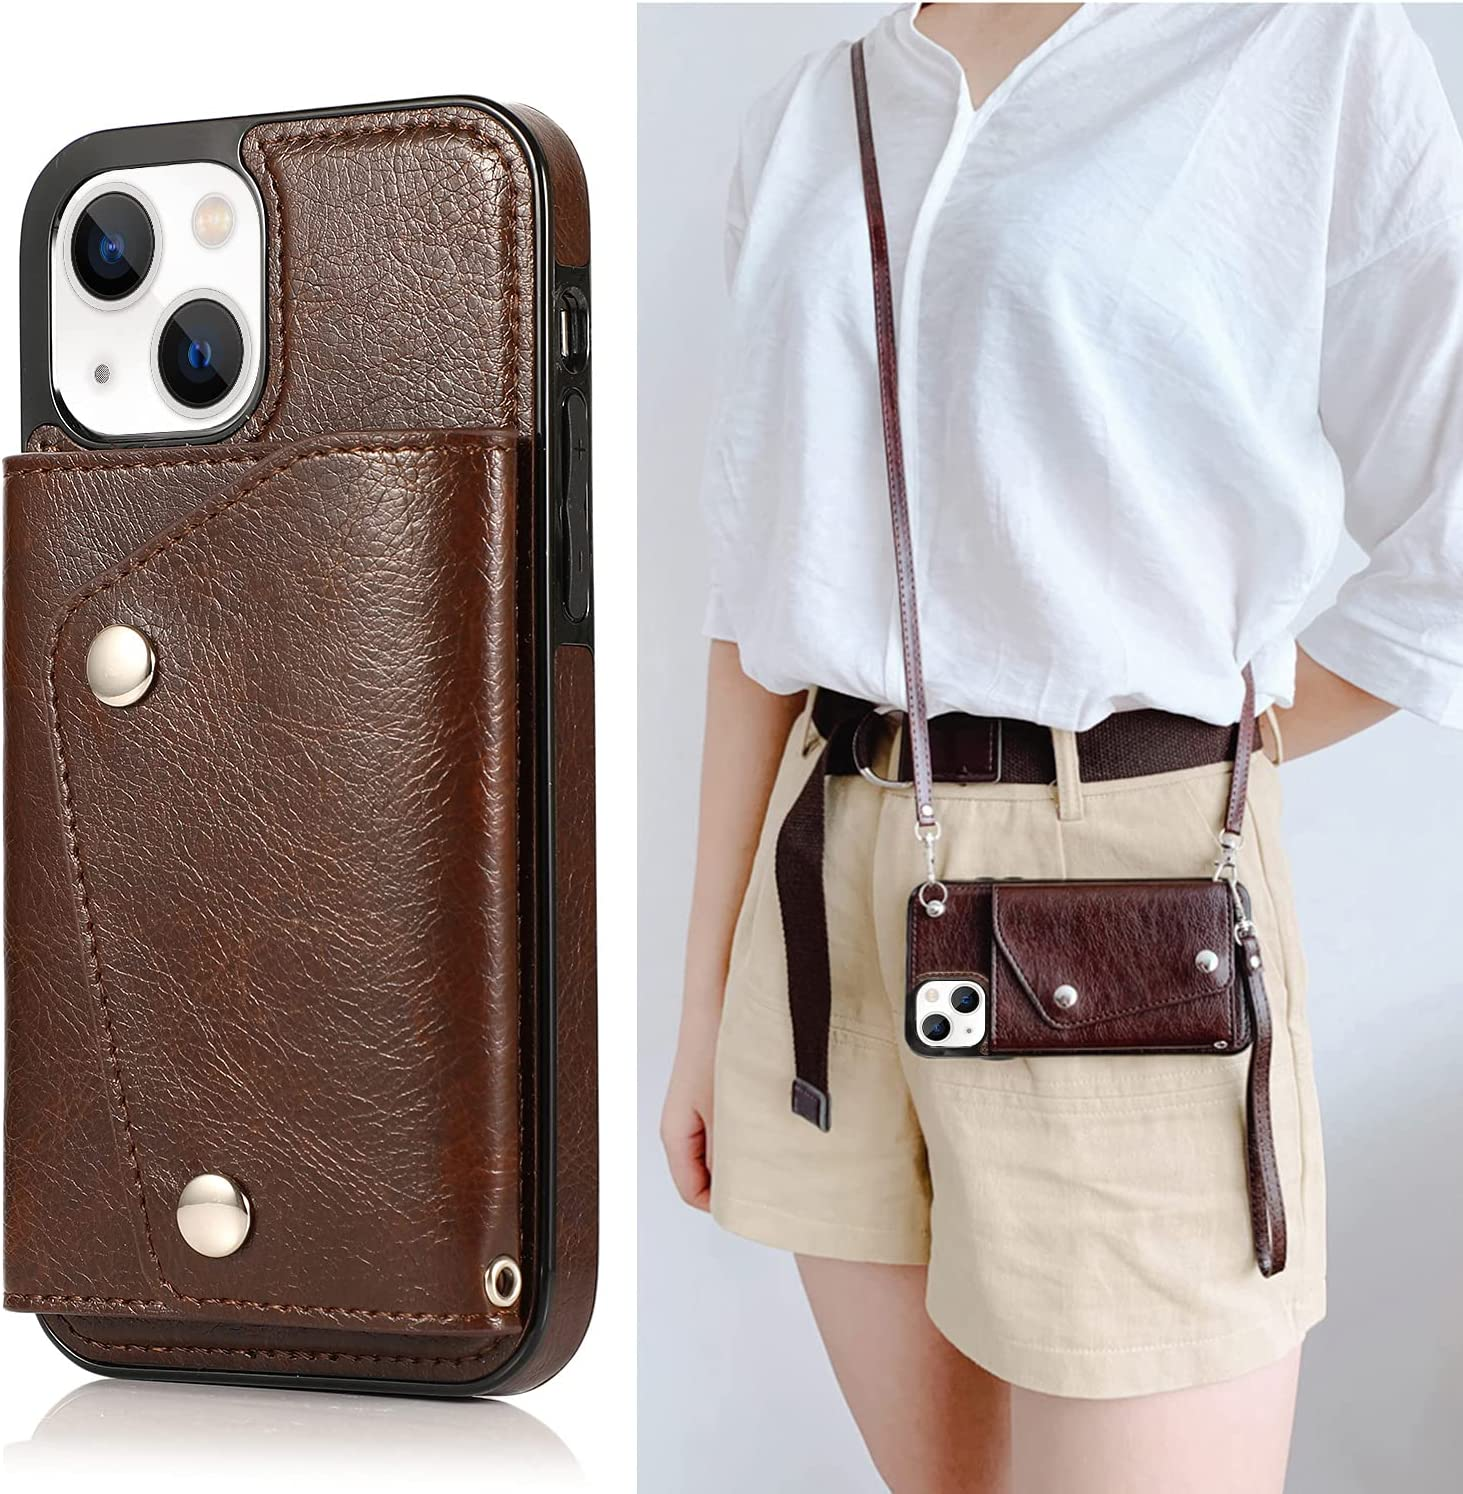 LUVI Compatible with iPhone 13 Wallet Case with Card Holder Crossbody Neck Strap Lanyard Handbag Wrist Strap Purse for Women PU Leather Flip Case with Credit Card Slot Kickstands Stand Case Brown